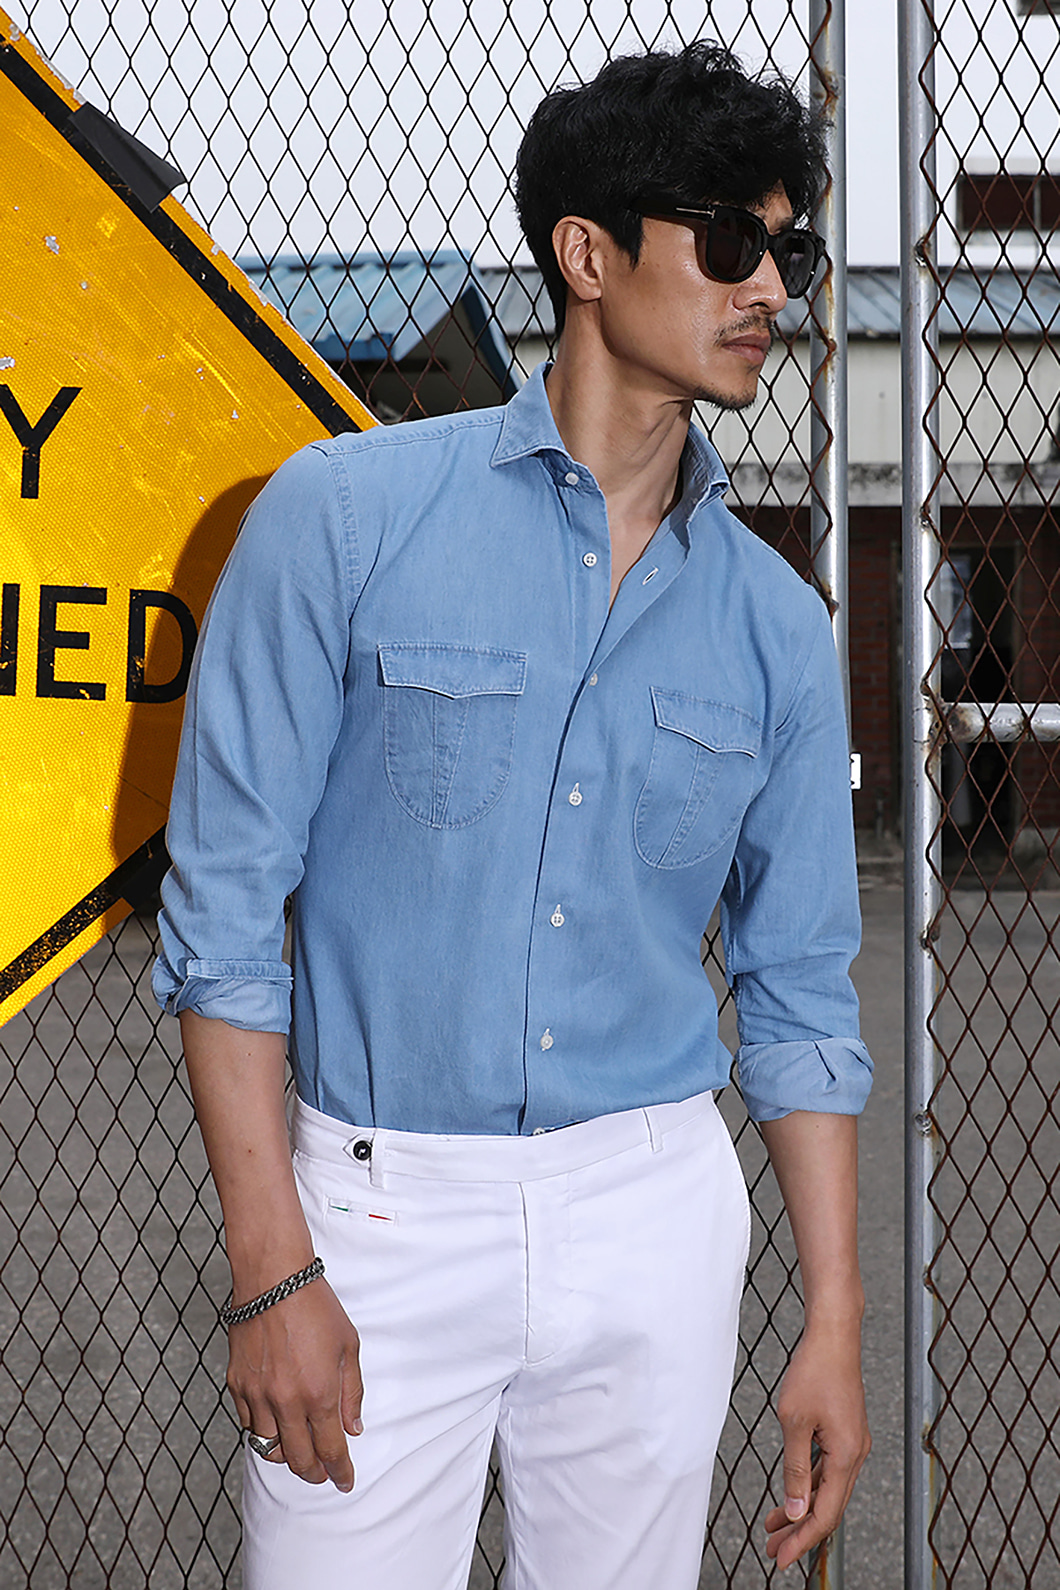 TAKE482 ITALIA A&C WASHED DENIM POCKET SHIRT-SKY BLUE2/3이상 판매완료-주간베스트셀러!